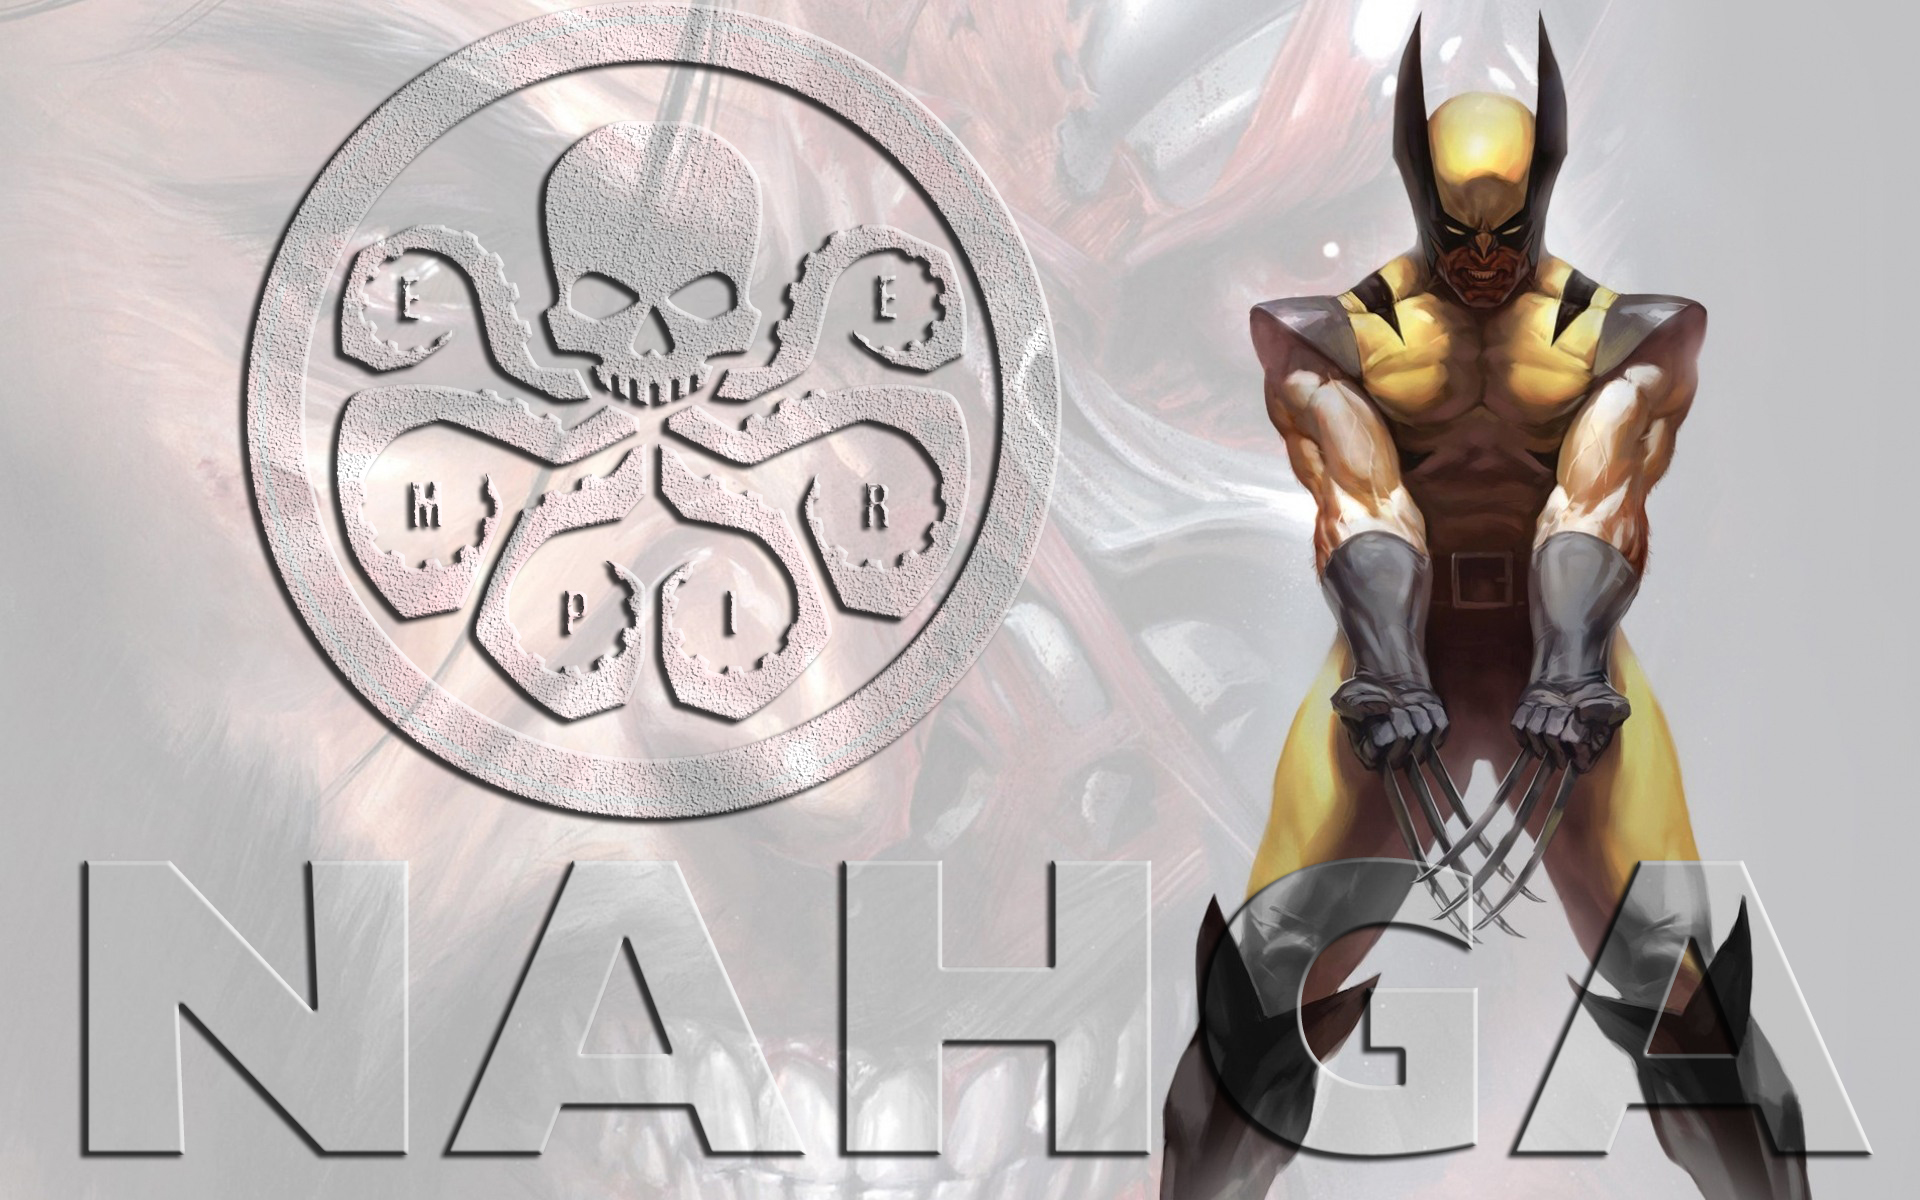 Read online Artifacts comic -  Issue #24 - 53